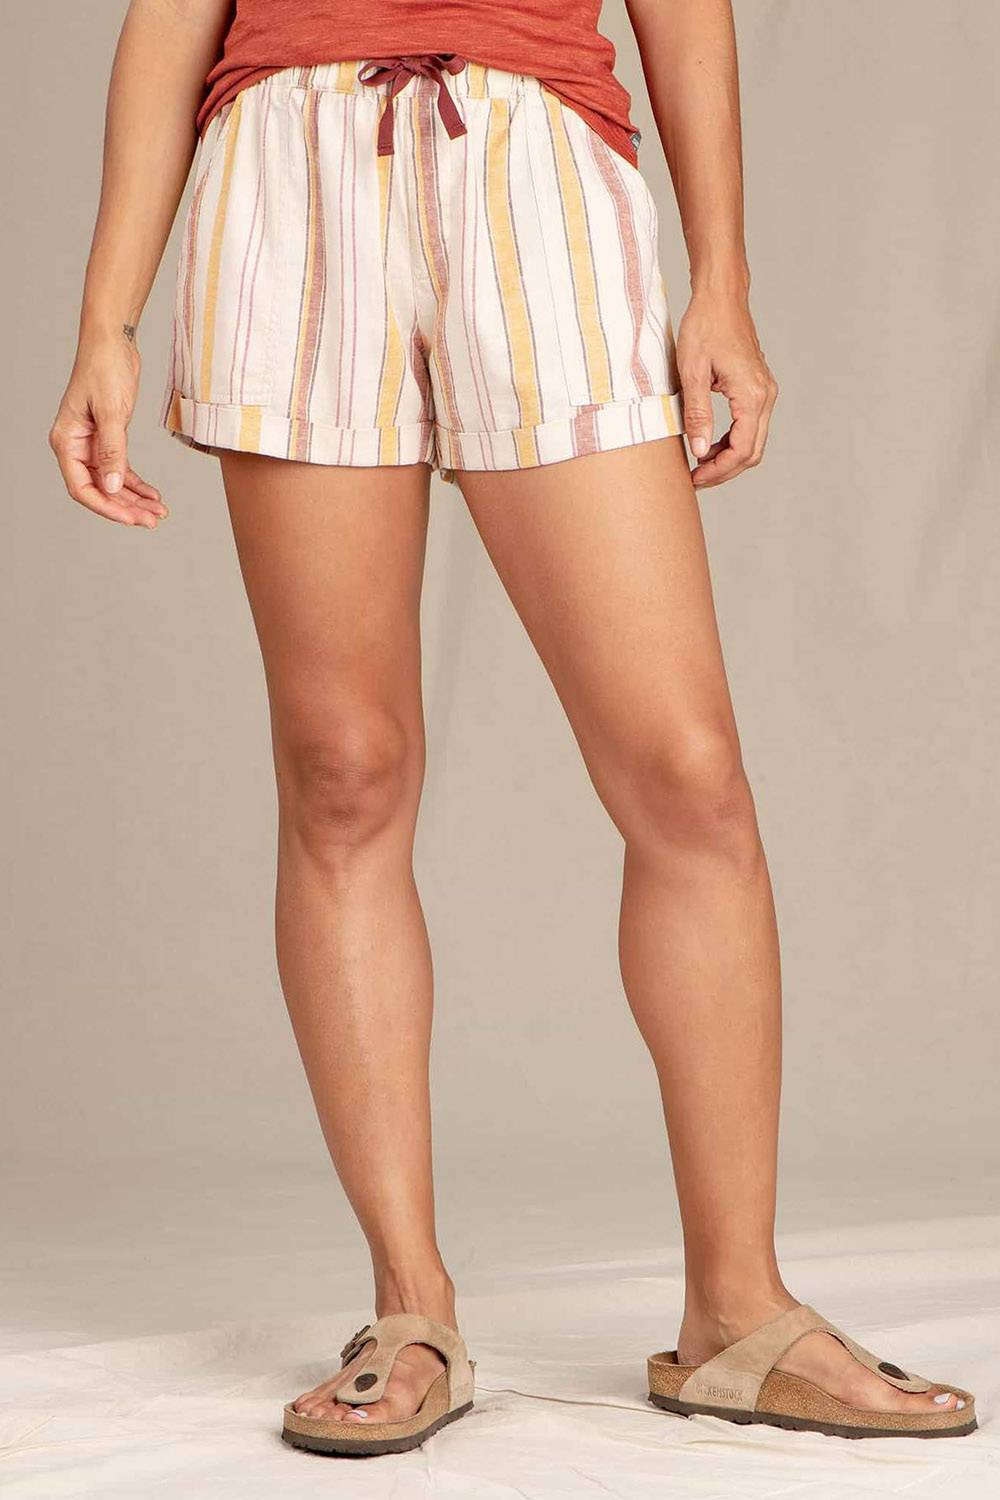 toad and co cute cheap lounge shorts